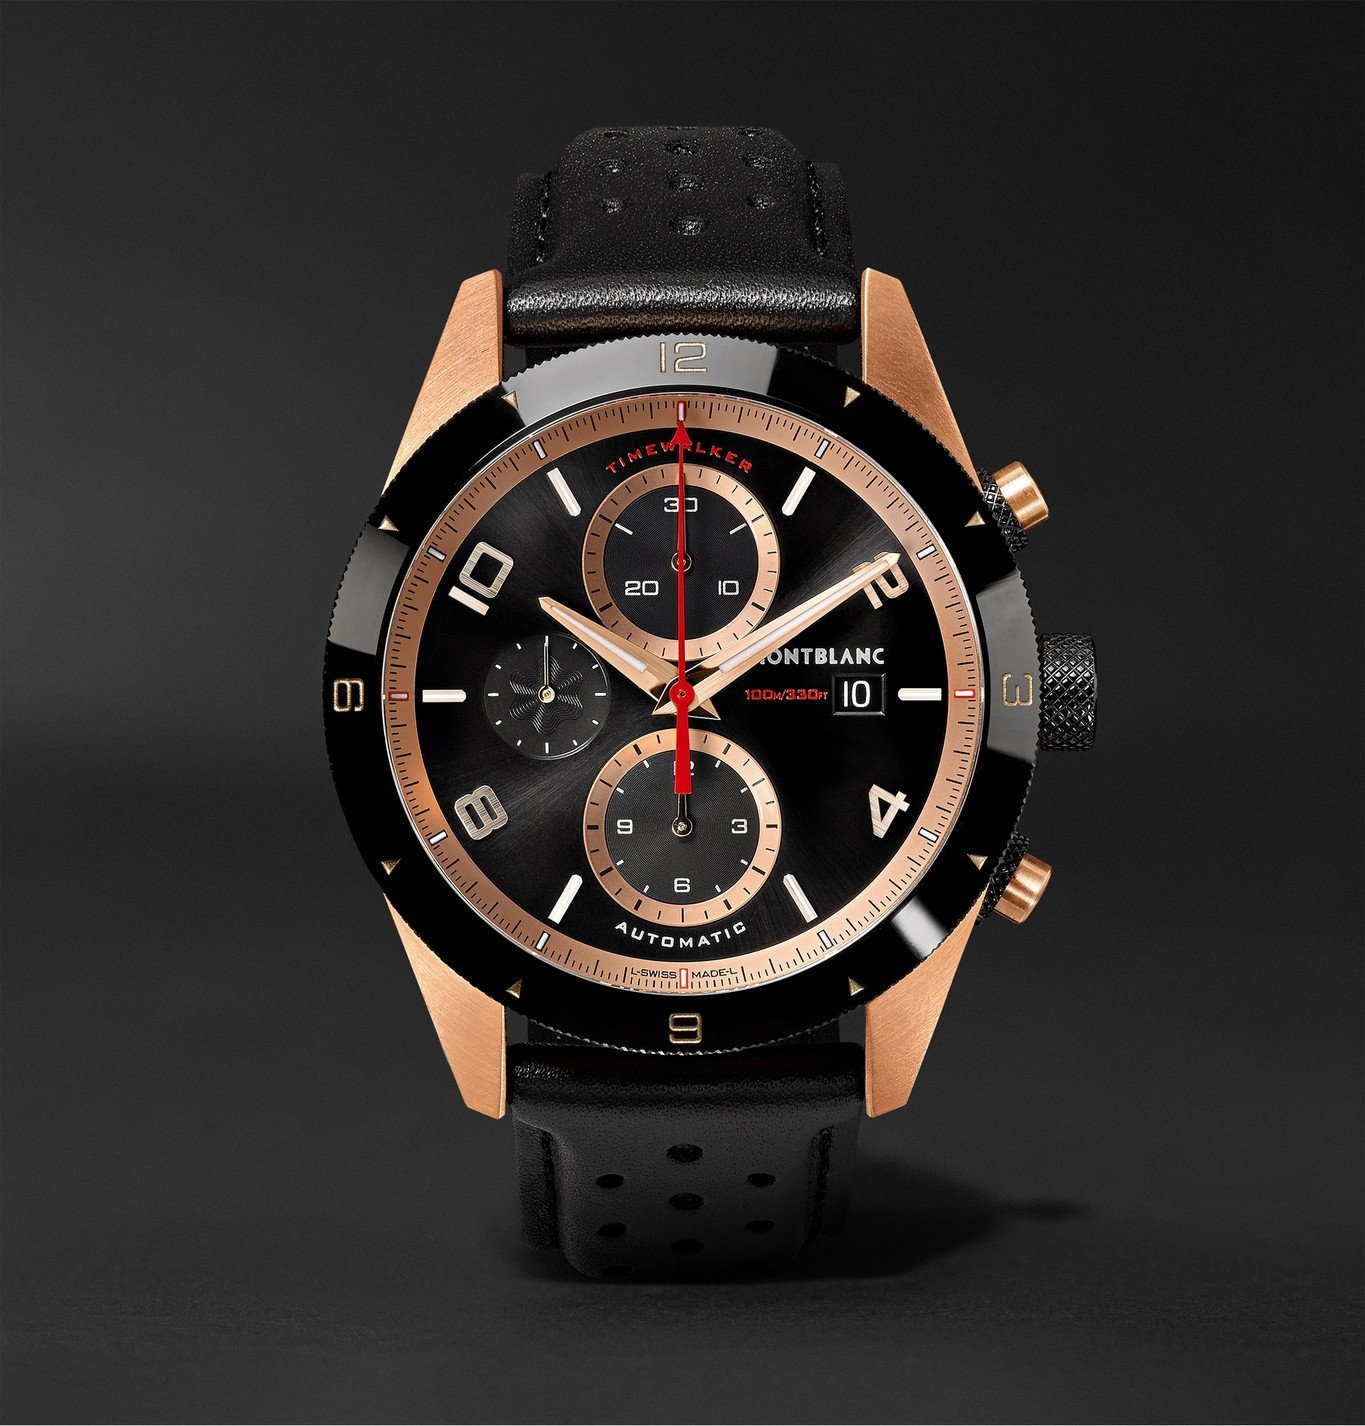 Montblanc - TimeWalker Automatic Chronograph 43mm 18-Karat Red Gold, Ceramic and Leather Watch, Ref. No. 117051 - Black